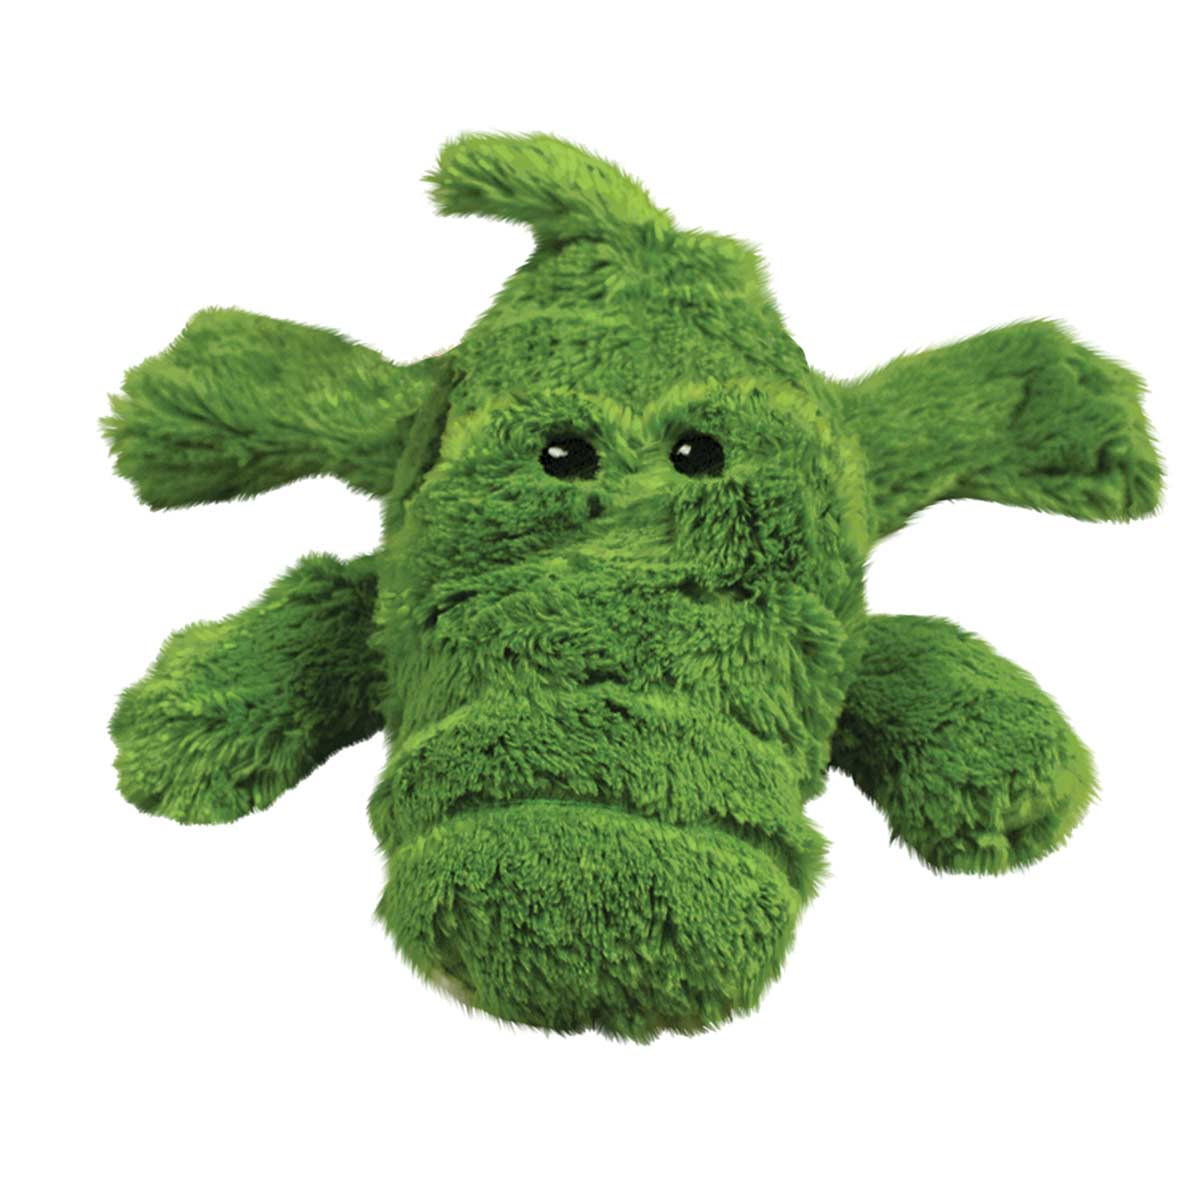 KONG Cozie Ali - Plush Alligator Dog Toy